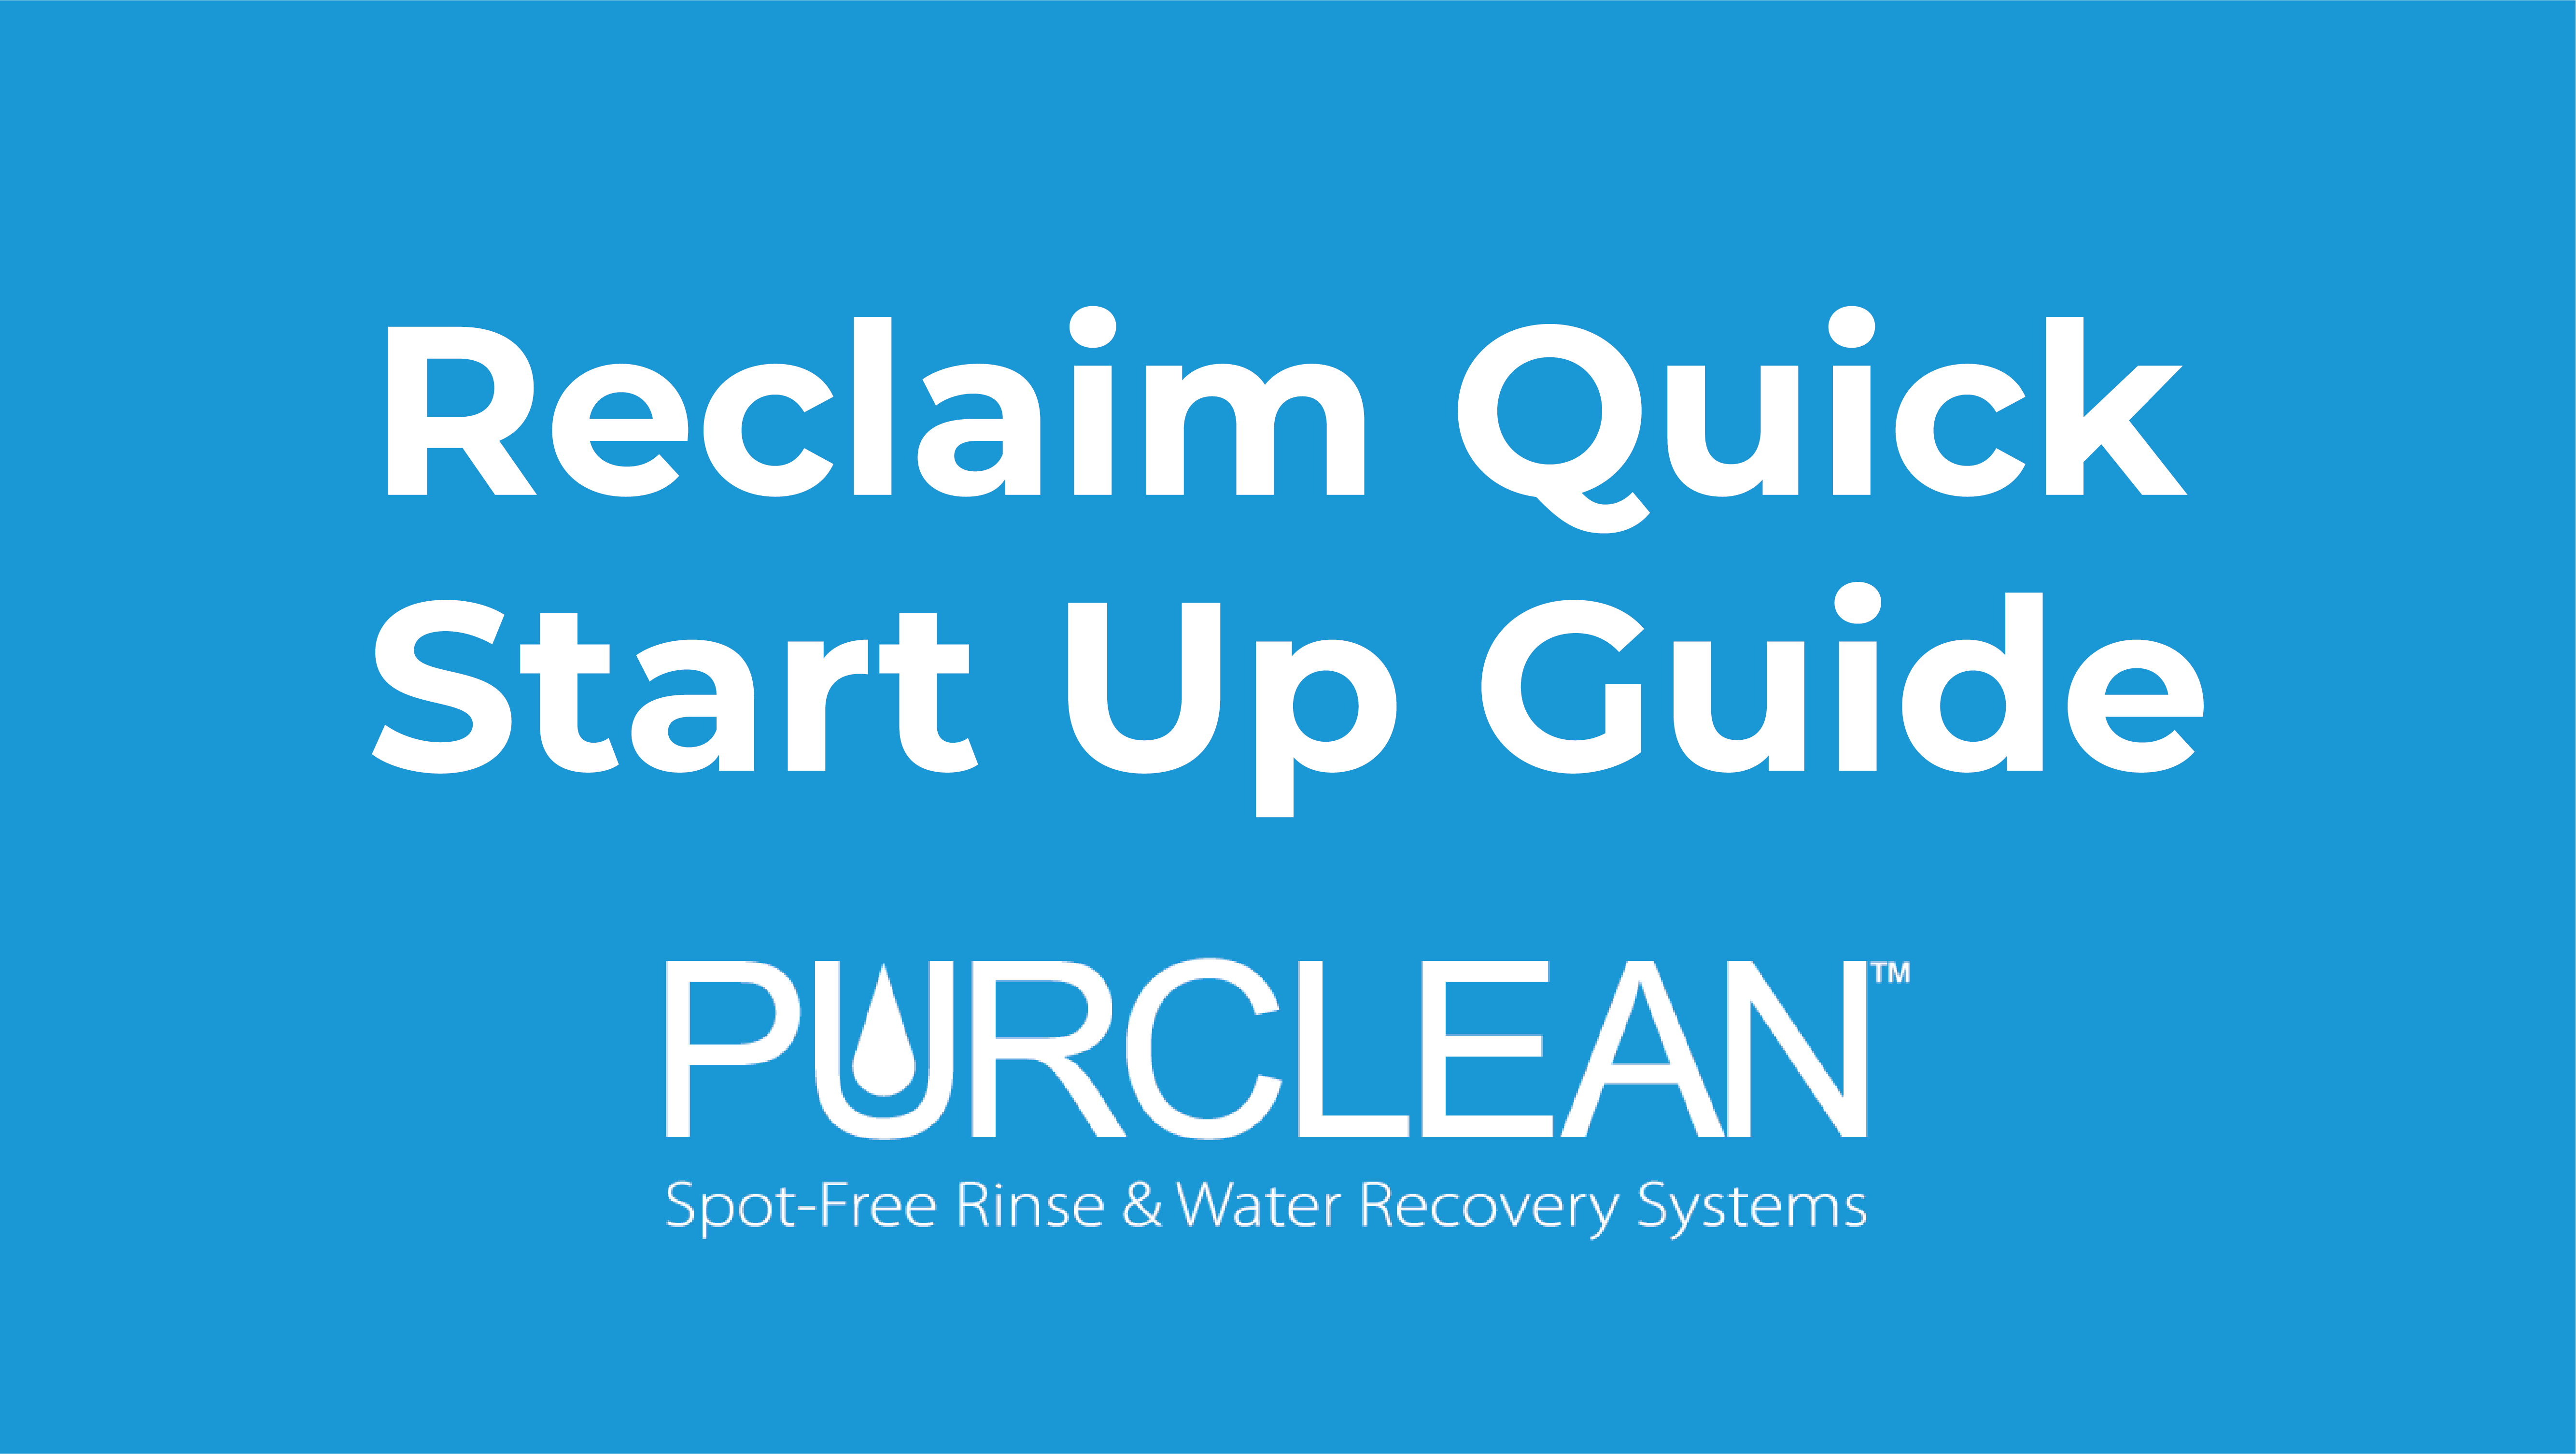 Reclaim Quick Start Up Guide